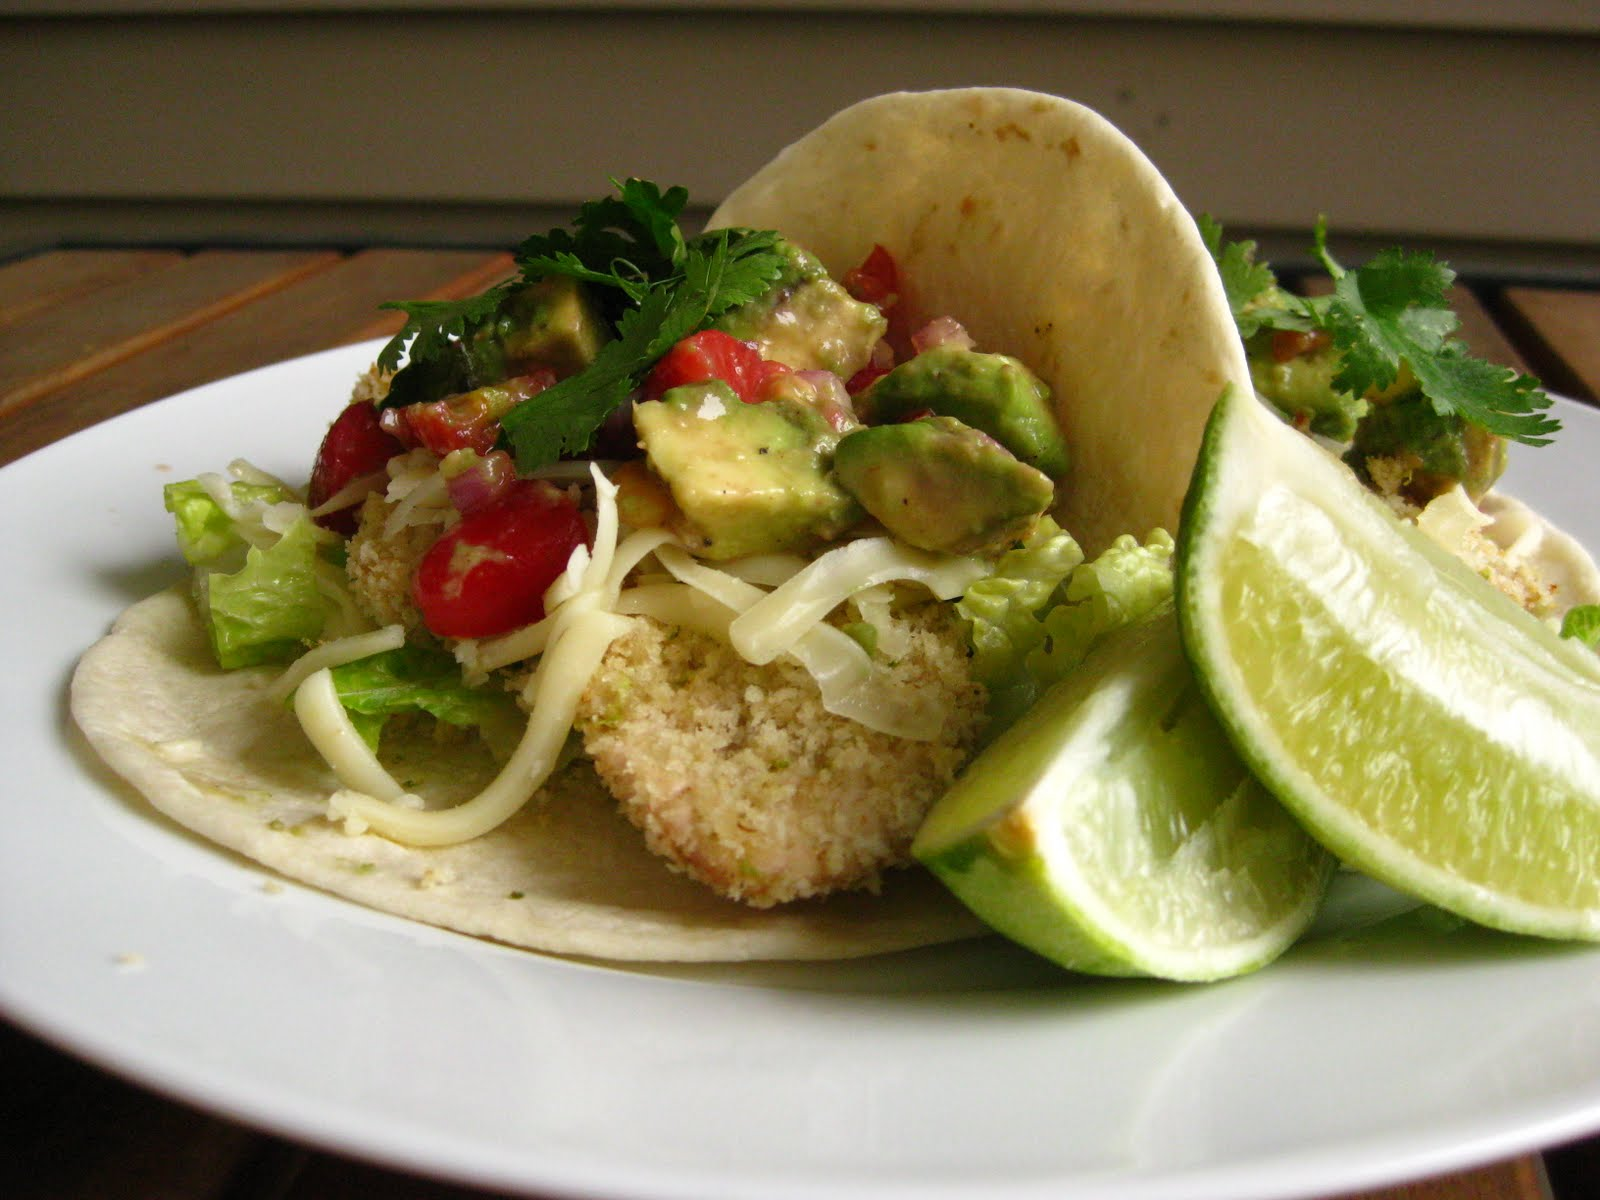 ... Cooking: Crispy Margarita Chicken Tacos with Strawberry Avocado Salsa